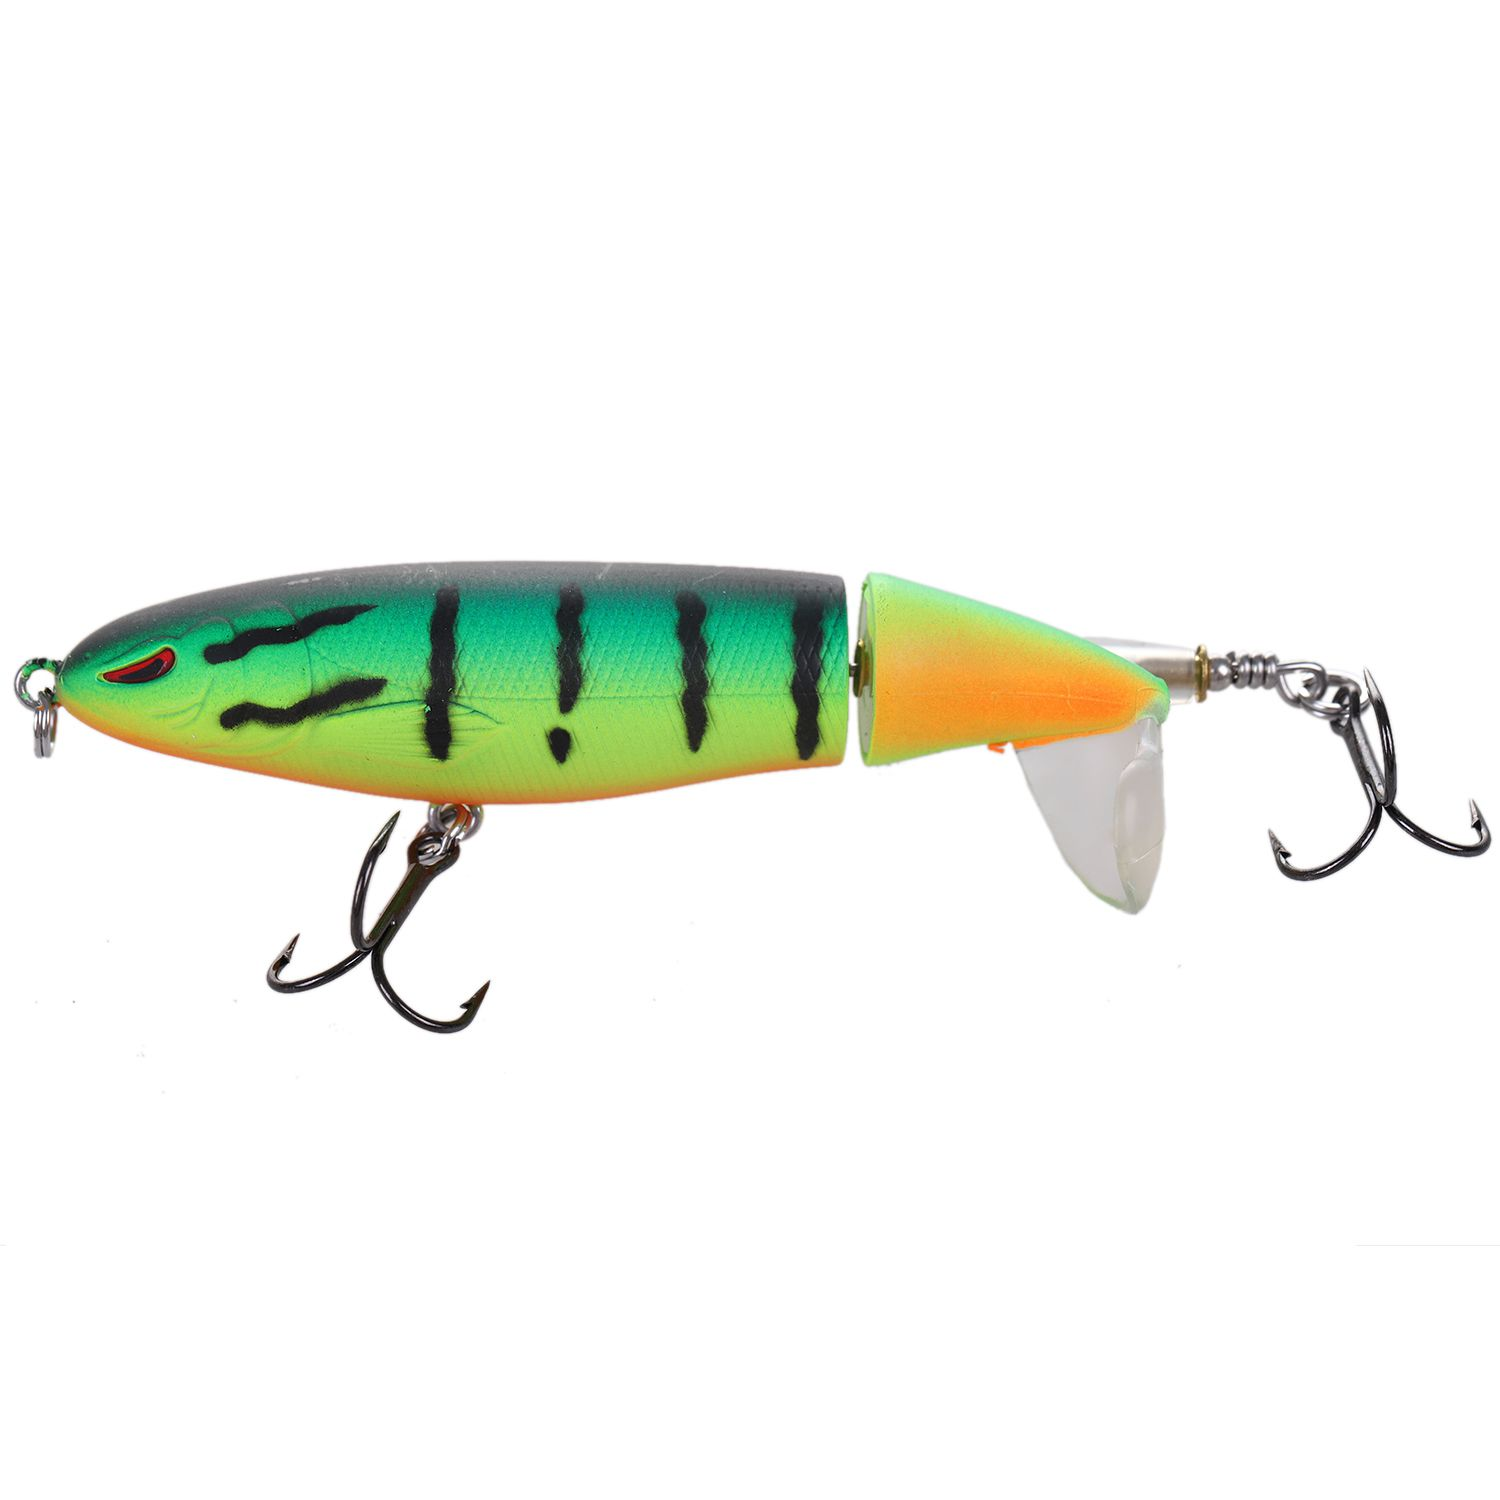 Whopper Popper Topwater Fishing Lure 13g 9cm Artificial Bait Hard Fishing Plopper Hook Soft Rotating Tail Fishing Tackle 30pcs set fishing lure kit hard spoon metal frog minnow jig head fishing artificial baits tackle accessories